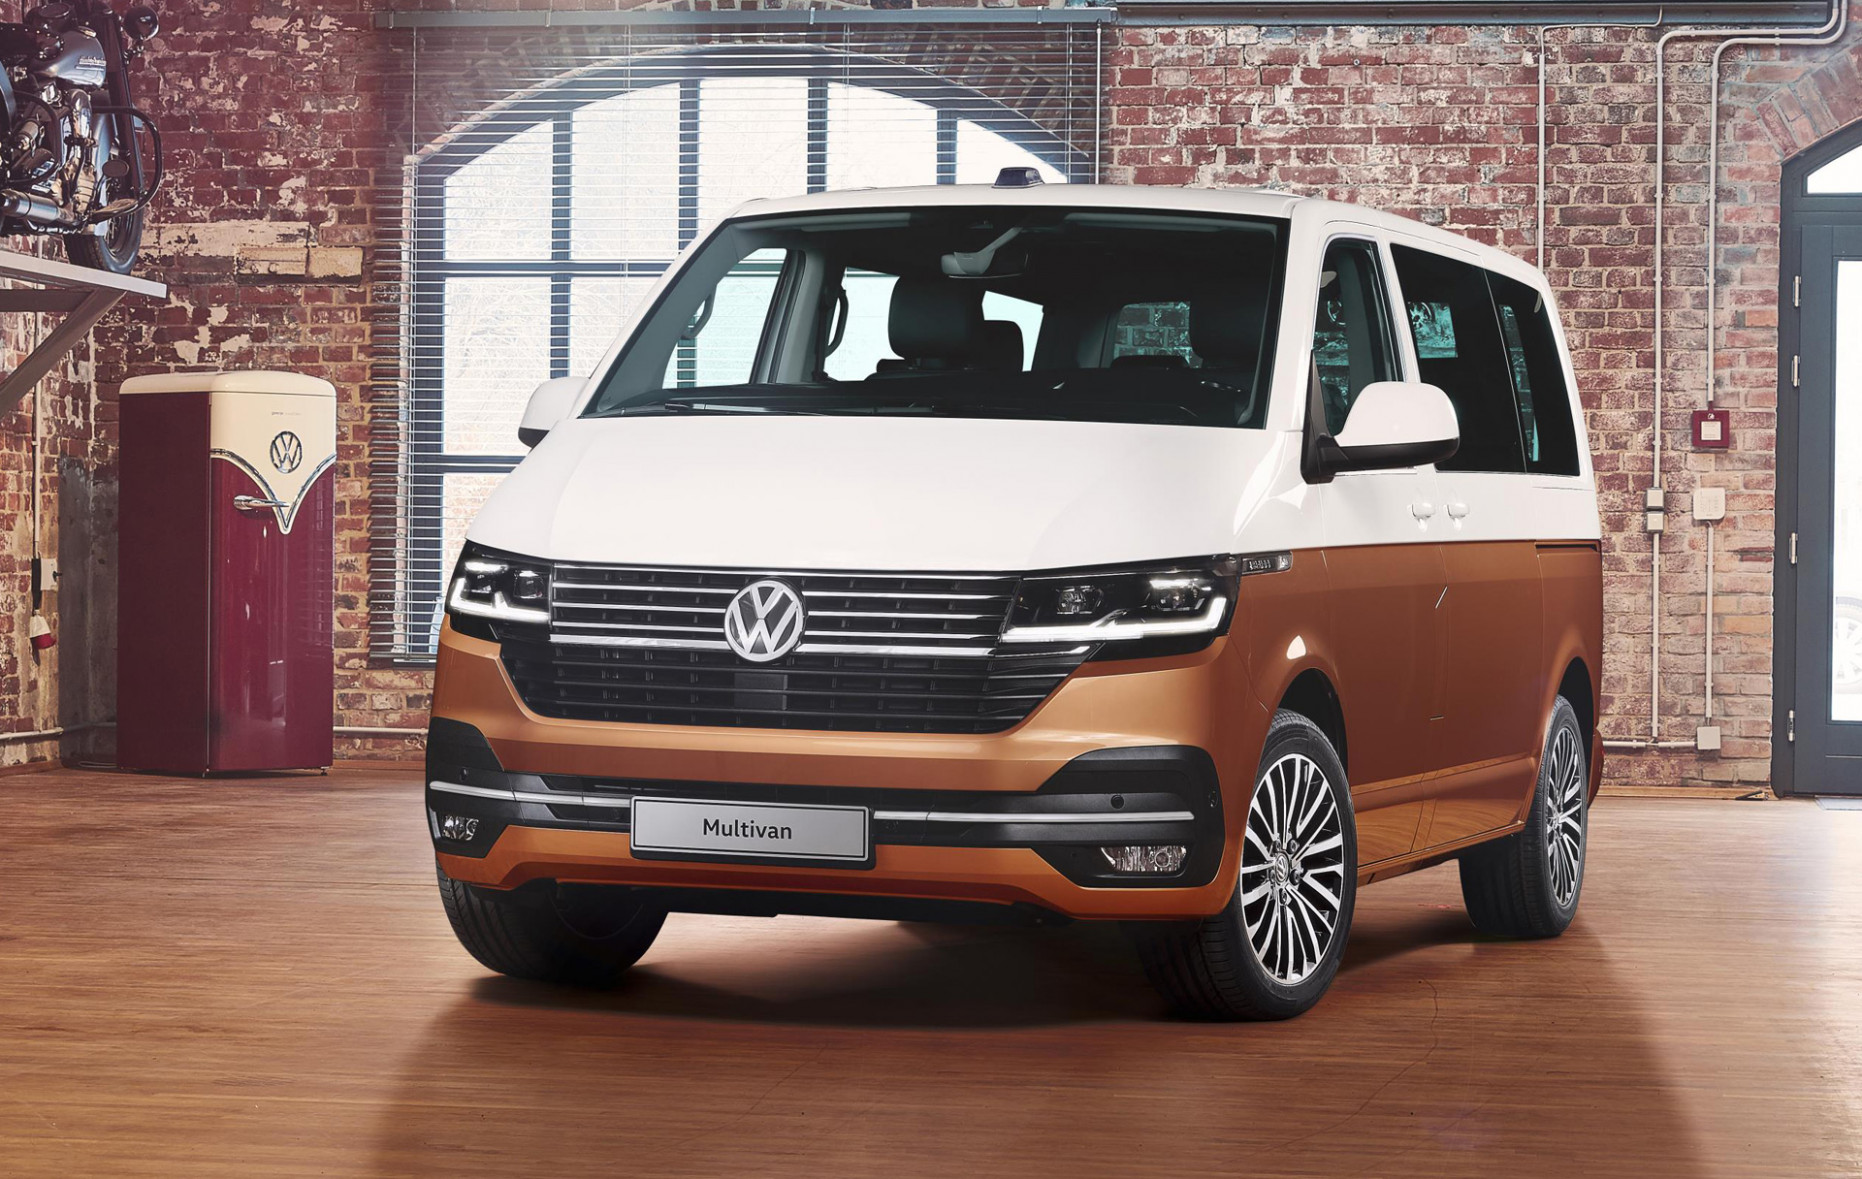 8 Volkswagen Transporter (T8.8) is the Bus we won't see